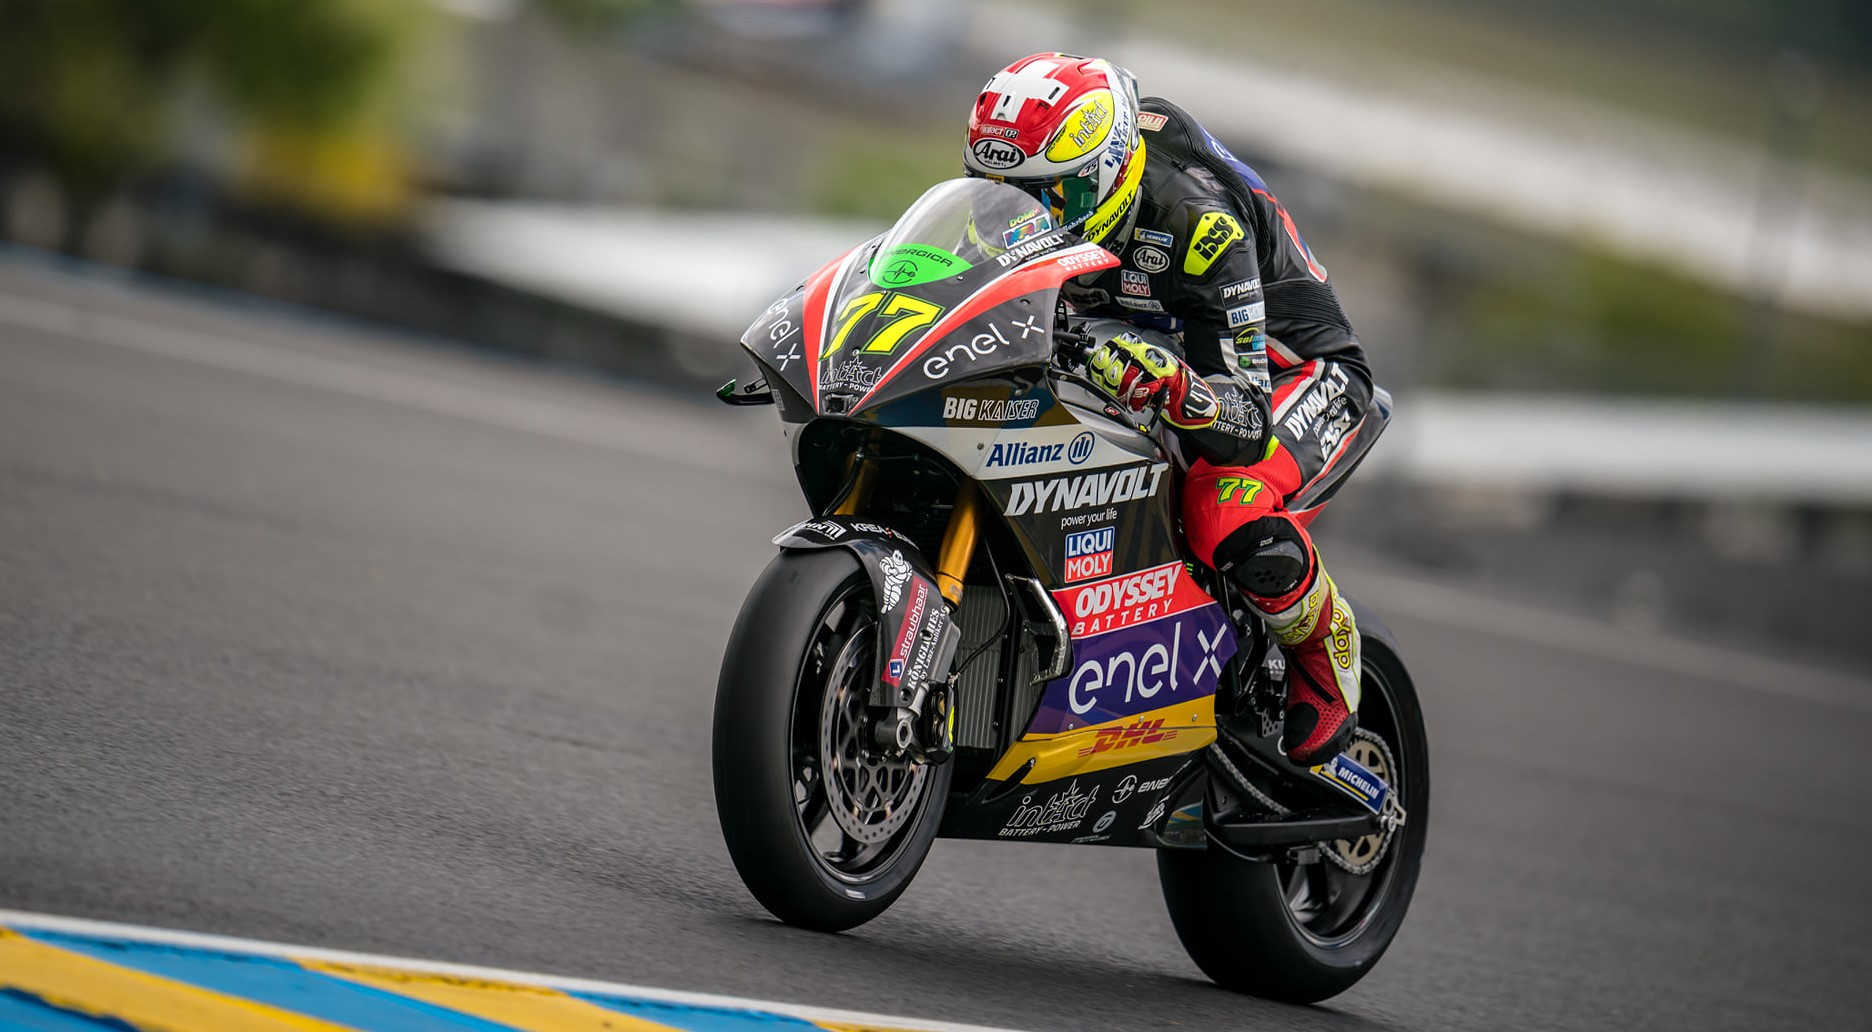 Dominique Aegerter (77) during FP1 at Le Mans. Photo courtesy Dynavolt Intact GP.